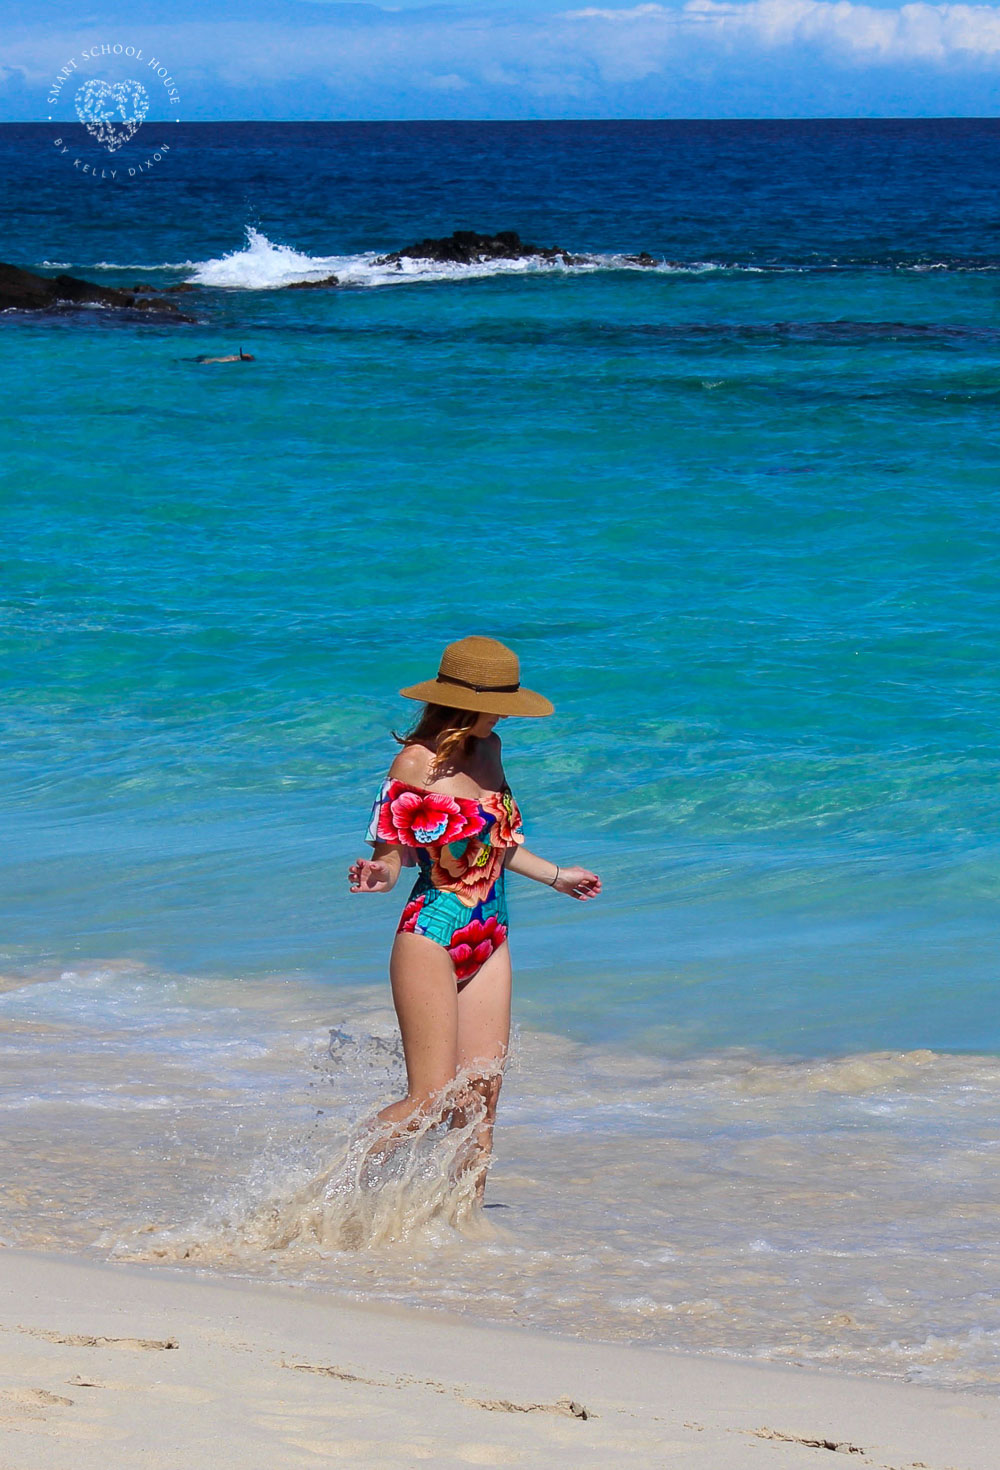 Floral one pice swimsuit bursting with color in Makalawena Beach, Big Island Hawaii